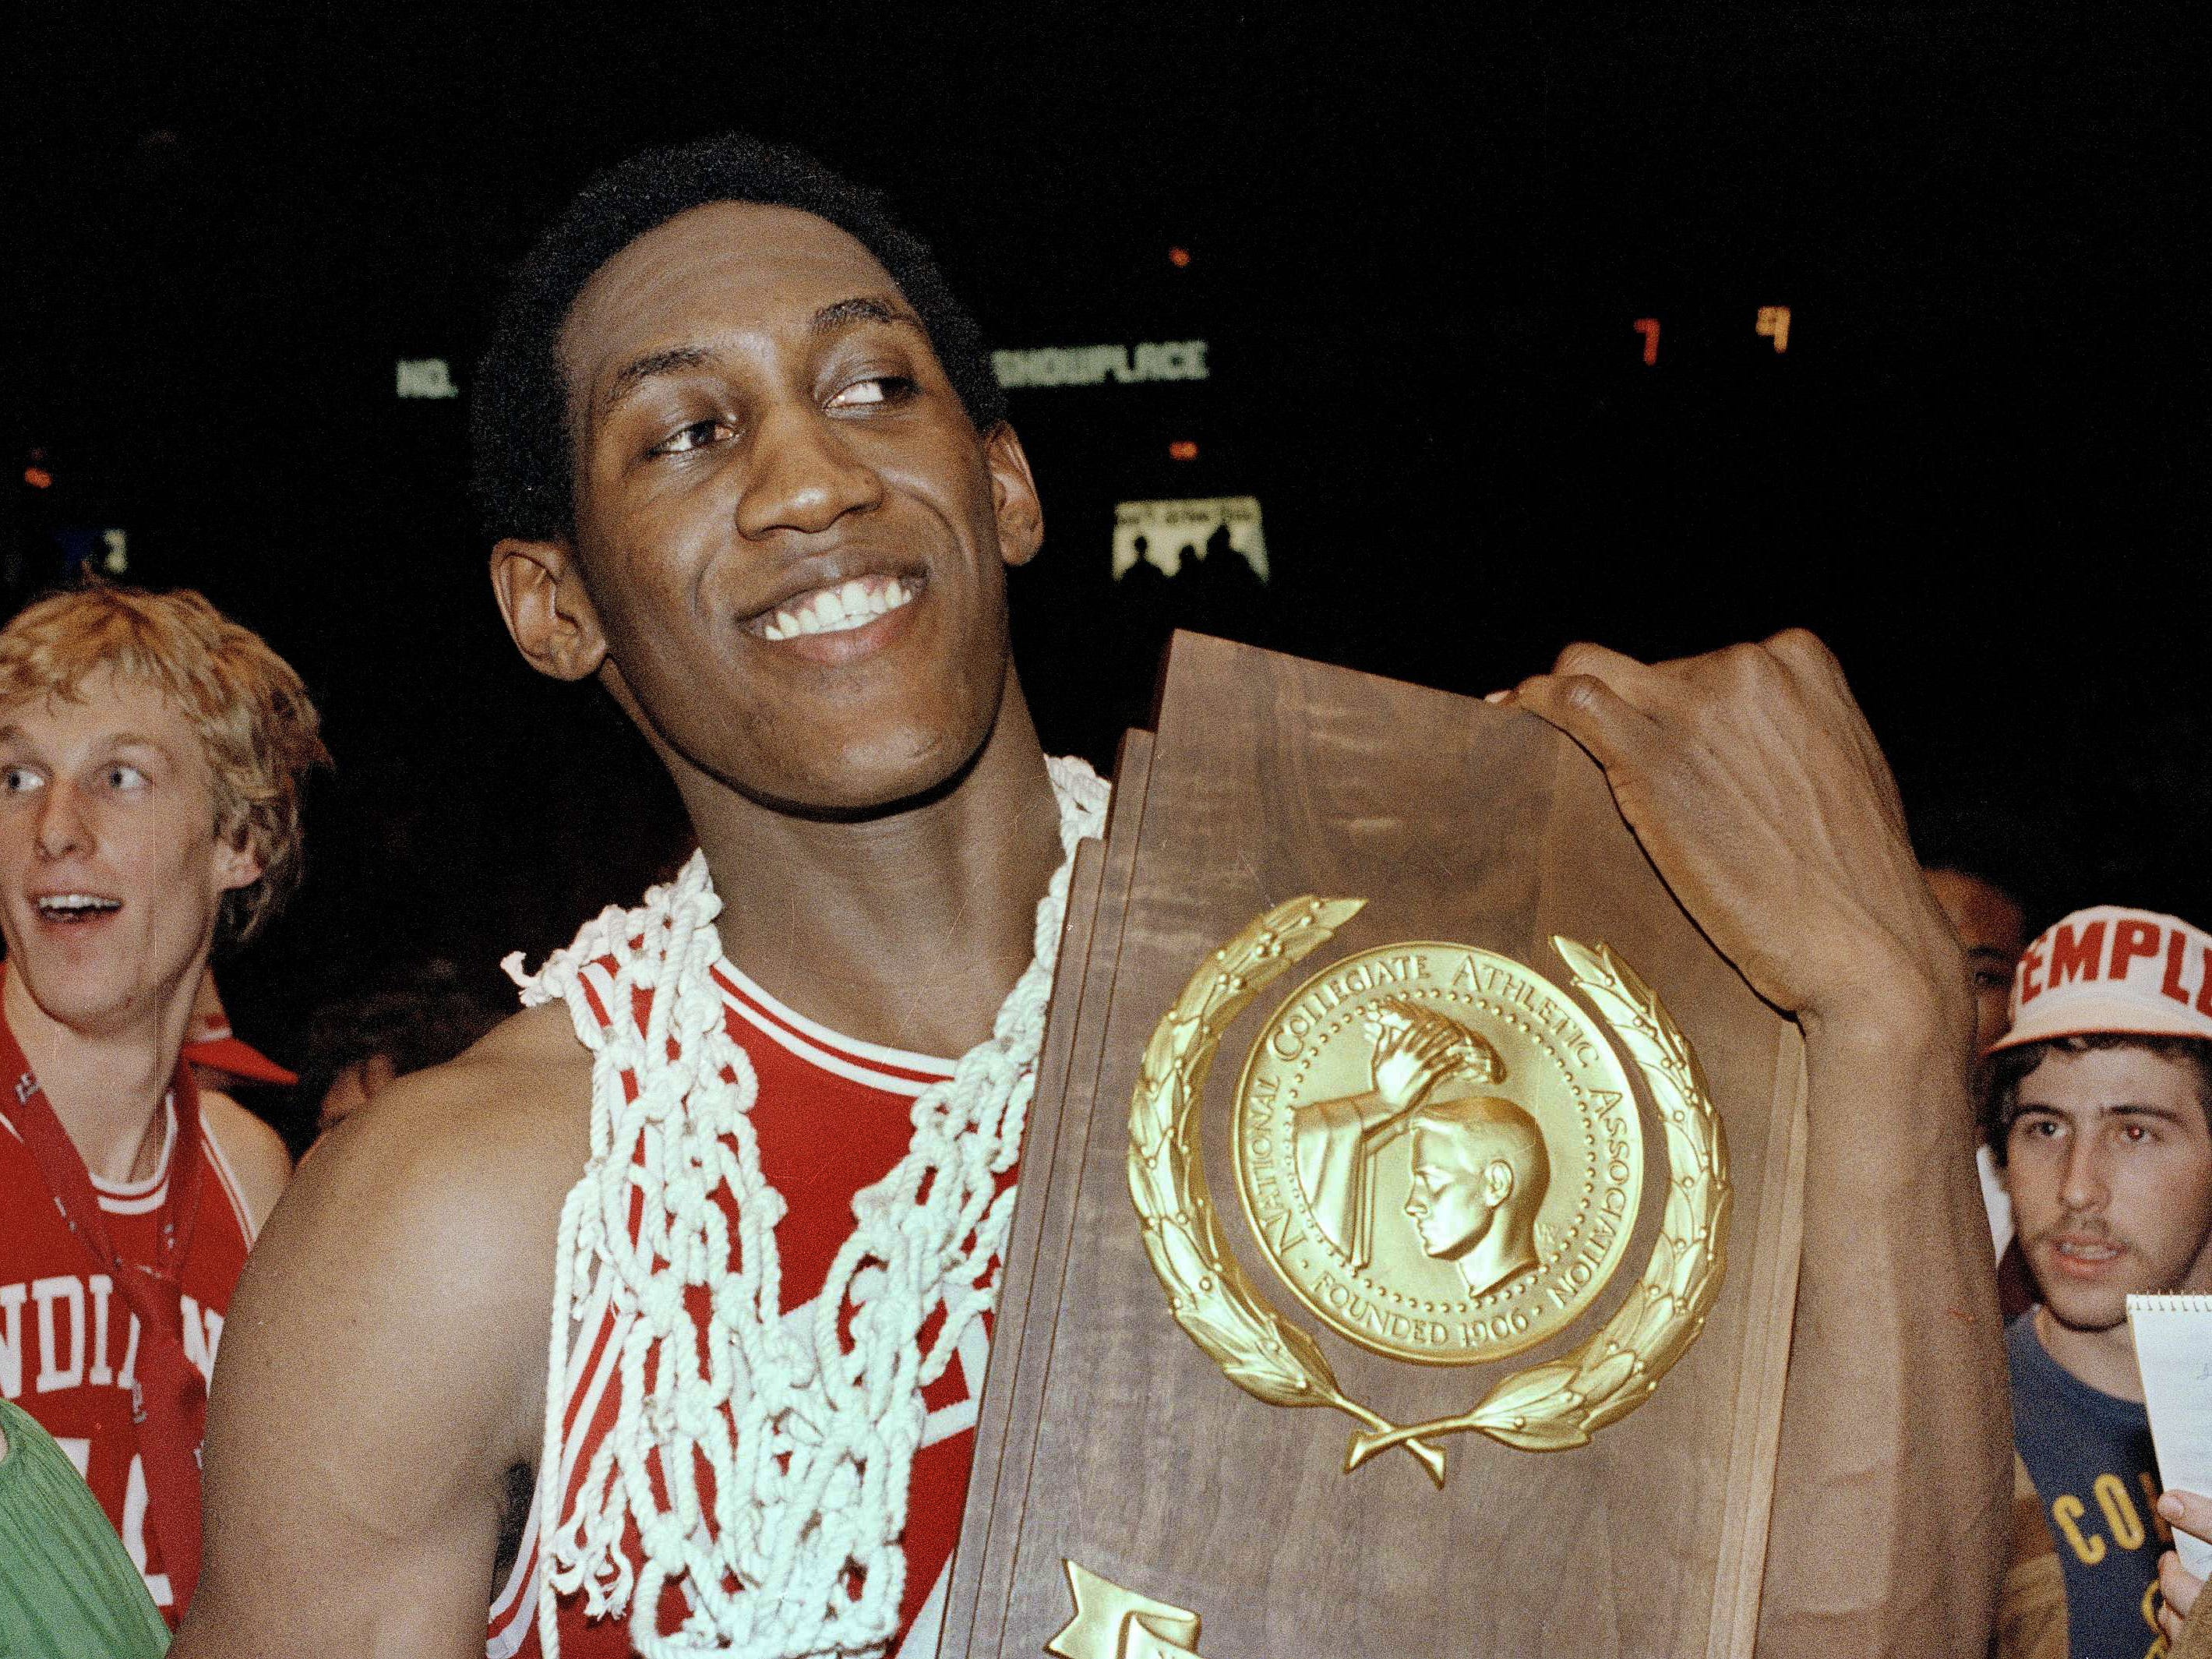 Isiah Thomas of Indiana University wears the net from the basket around his neck and holds plaque after his team won over North Carolina, 63-50, in the final NCAA championship game, March 31, 1981. Thomas was declared MVP of the game in Philadelphia.